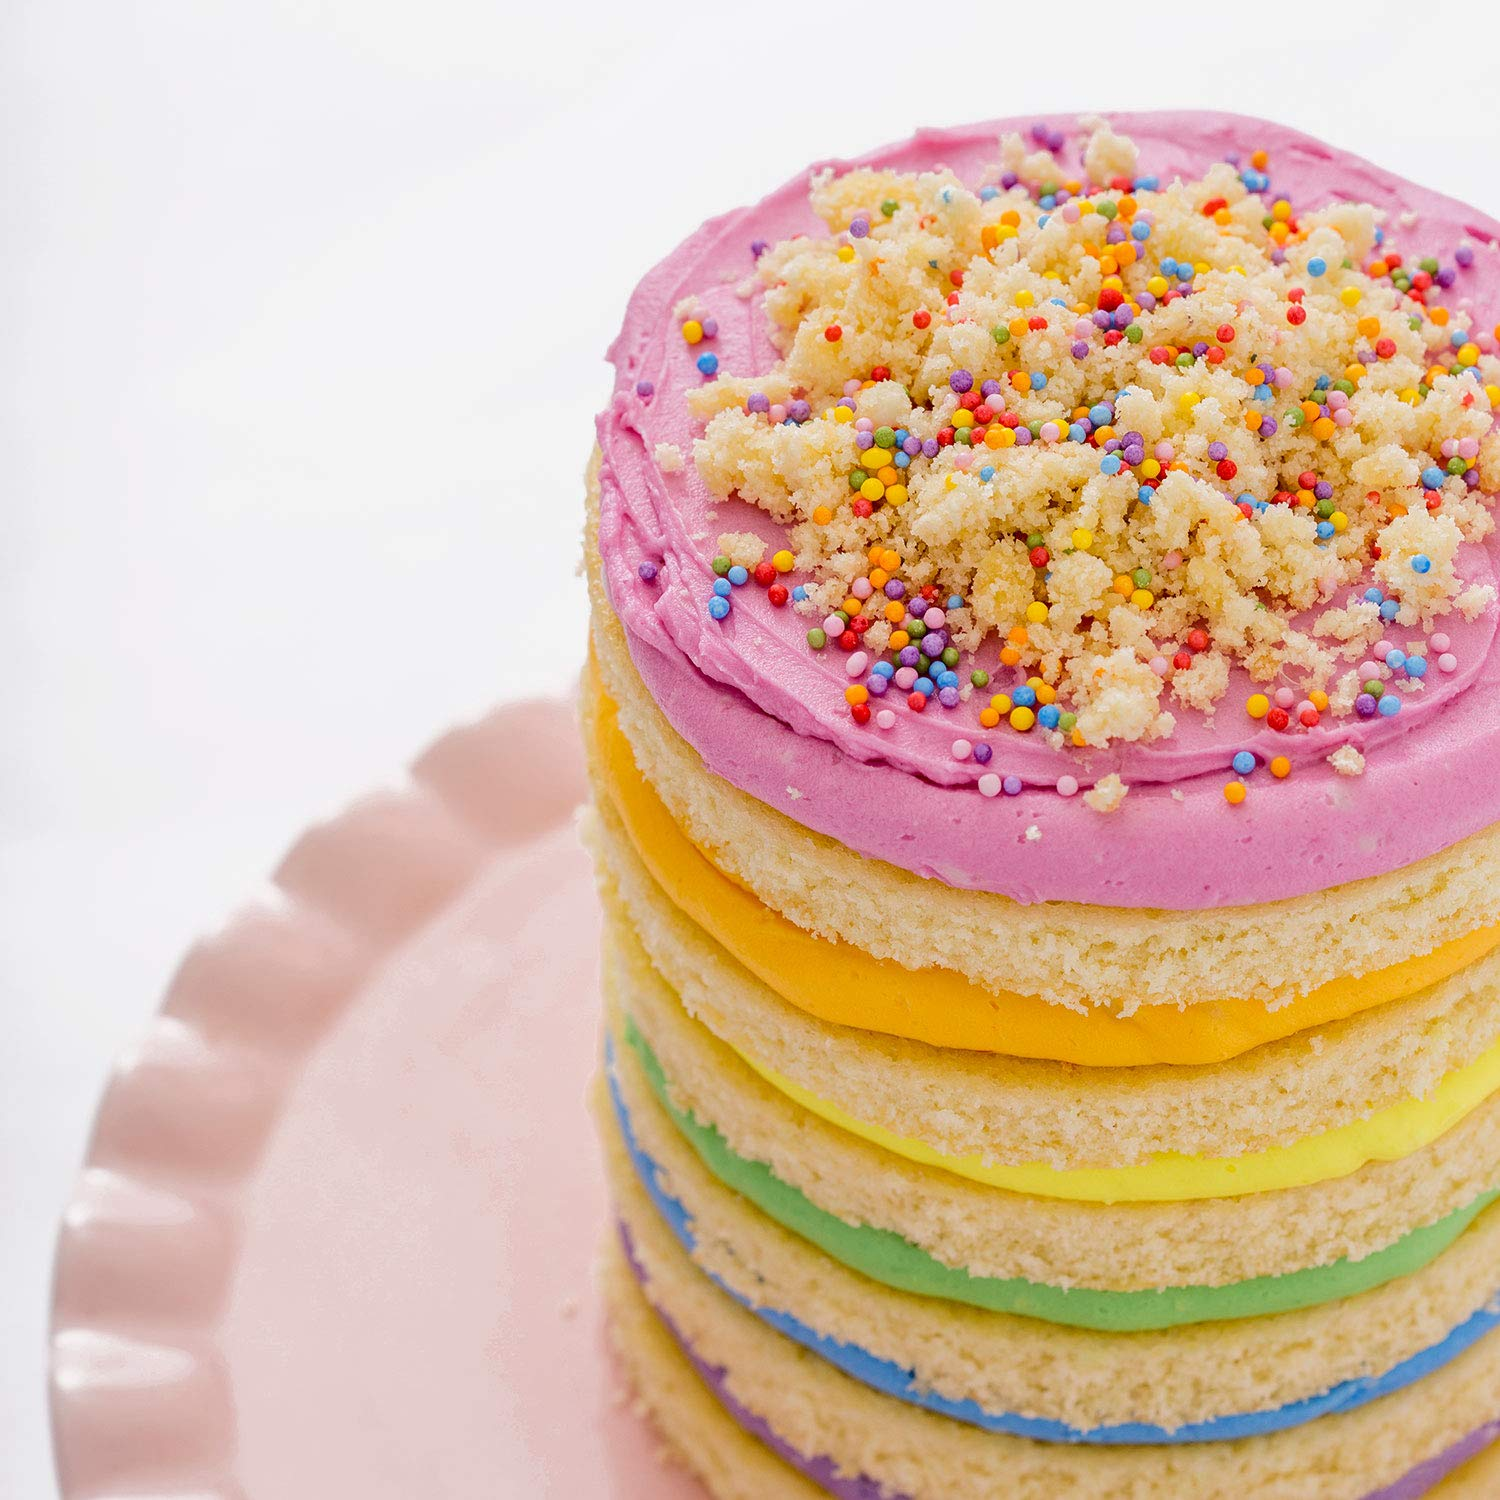 Miss Jones Baking 90% Organic Birthday Buttercream Frosting, Perfect for Icing and Decorating, Vegan-Friendly: Confetti Pop (Pack of 6) by Miss Jones Baking (Image #11)